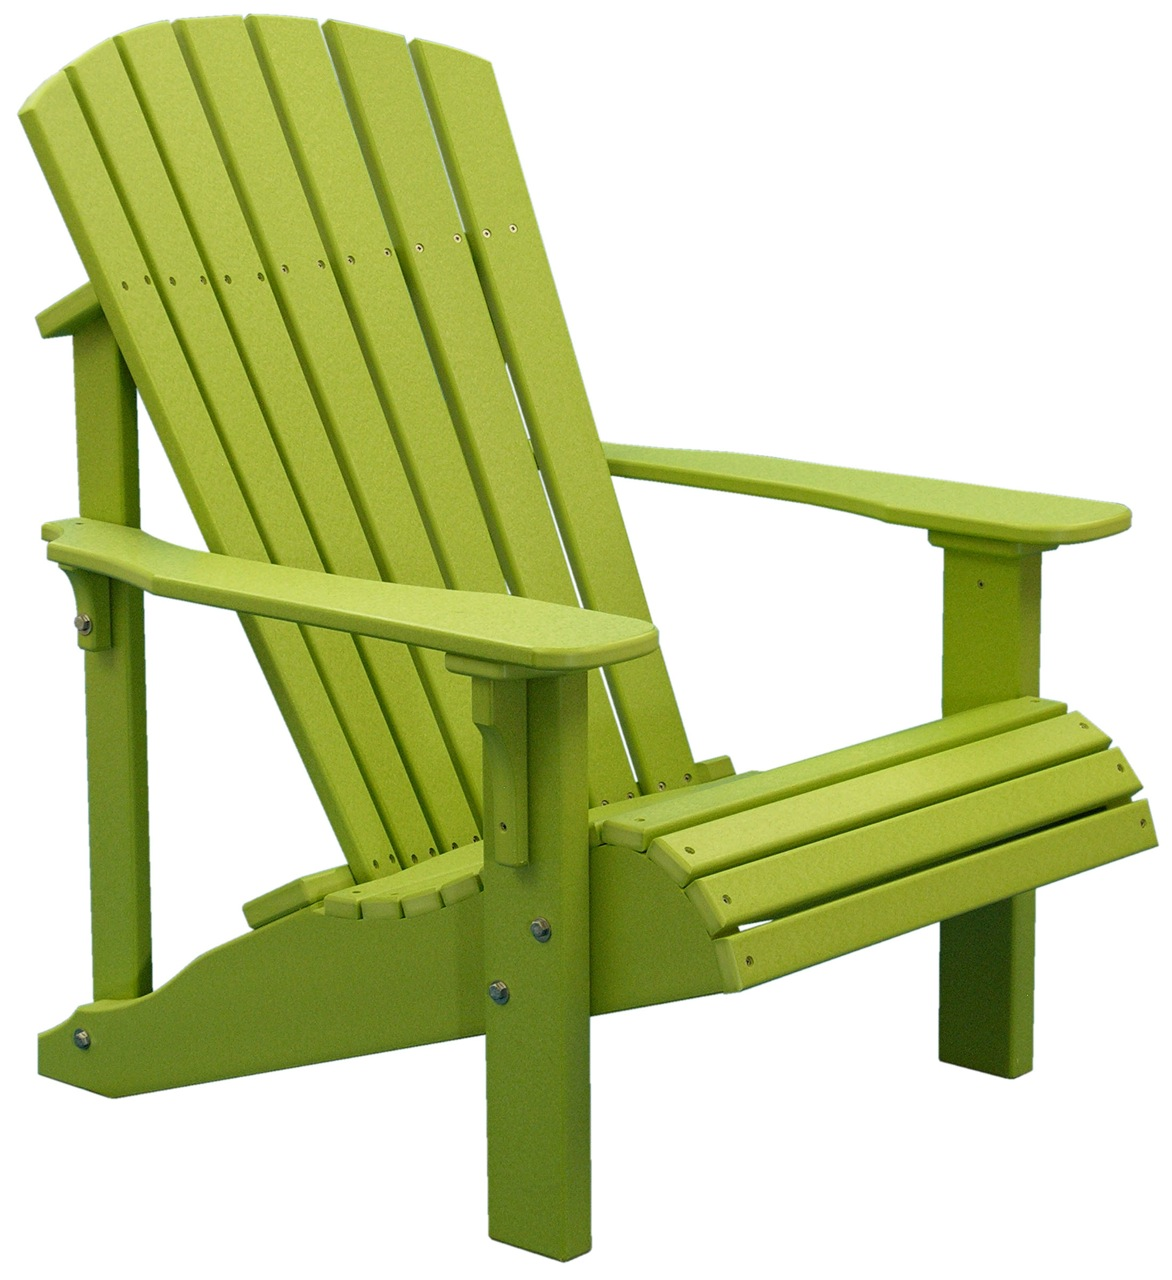 Master recycled plastic adirondack chairs deluxe adirondack chair, polywood tnwrgrs